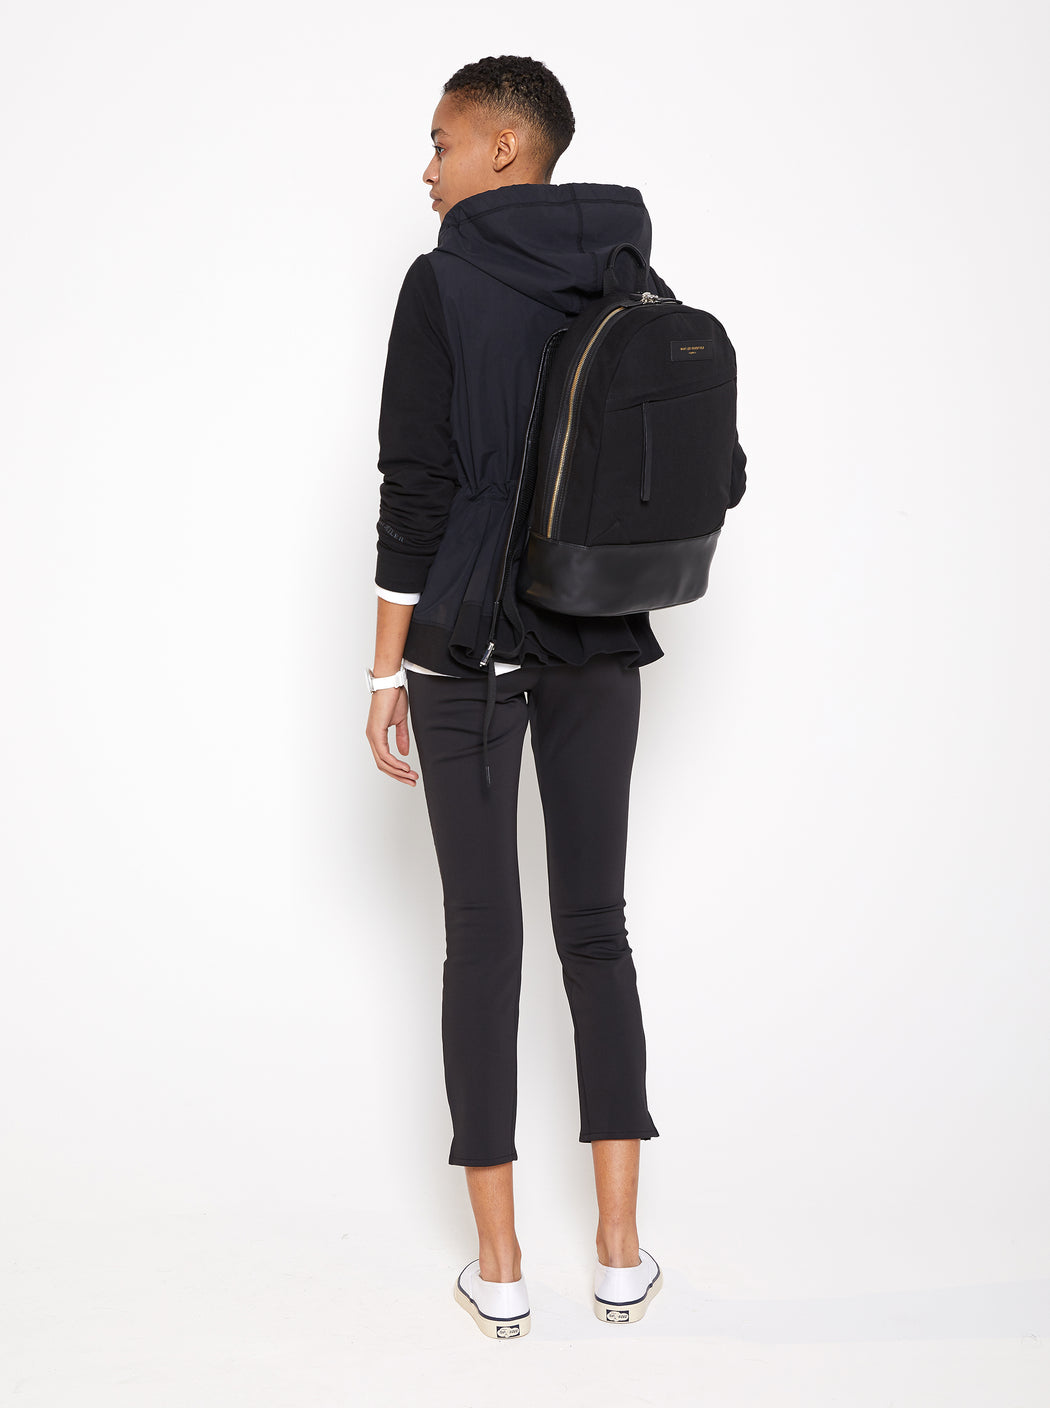 Model wearing Women Back Pleated Hoodie Zip-Up made with Organic Cotton in Black (Back View)